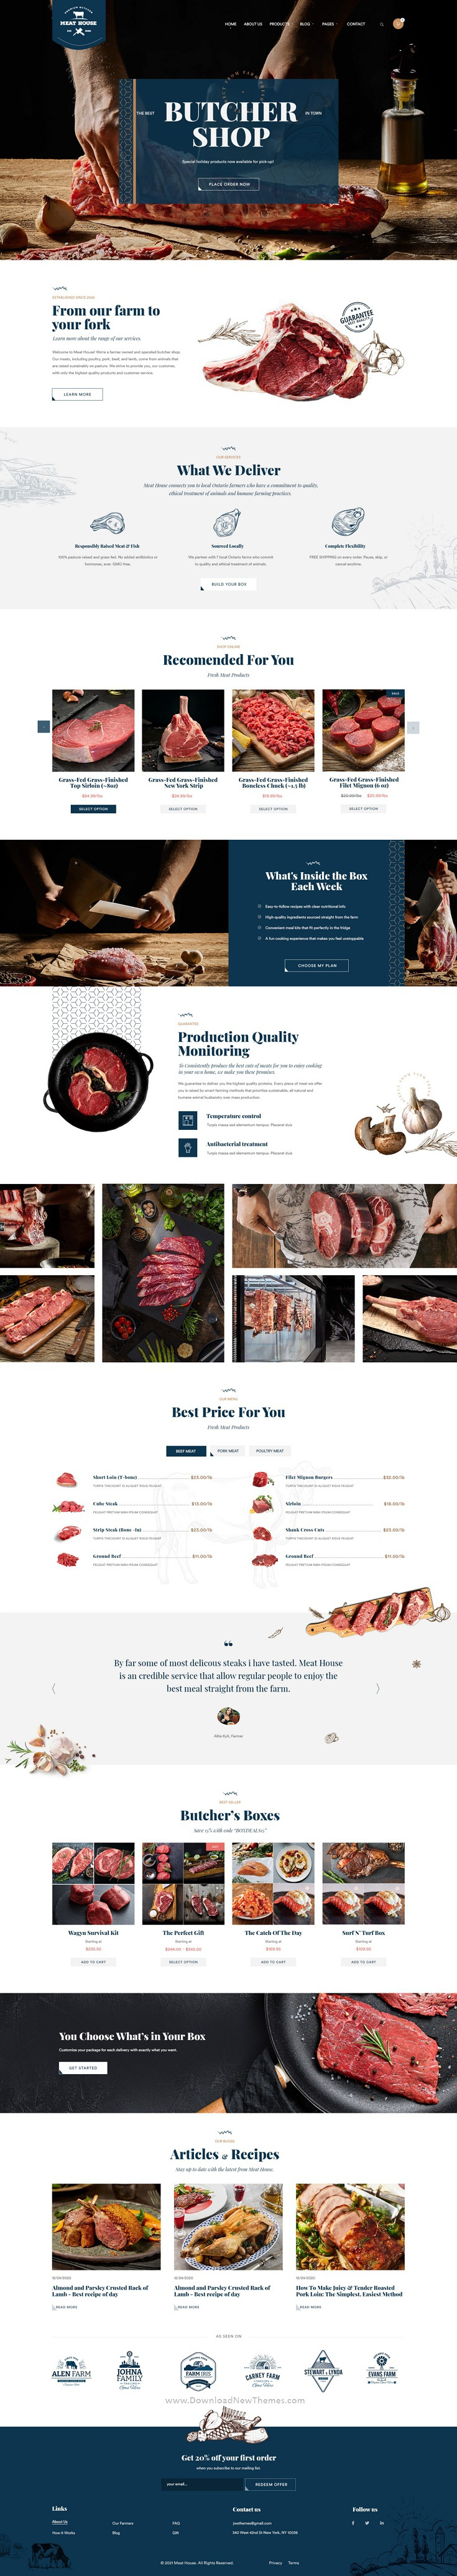 Butcher and Carne Shop PSD template